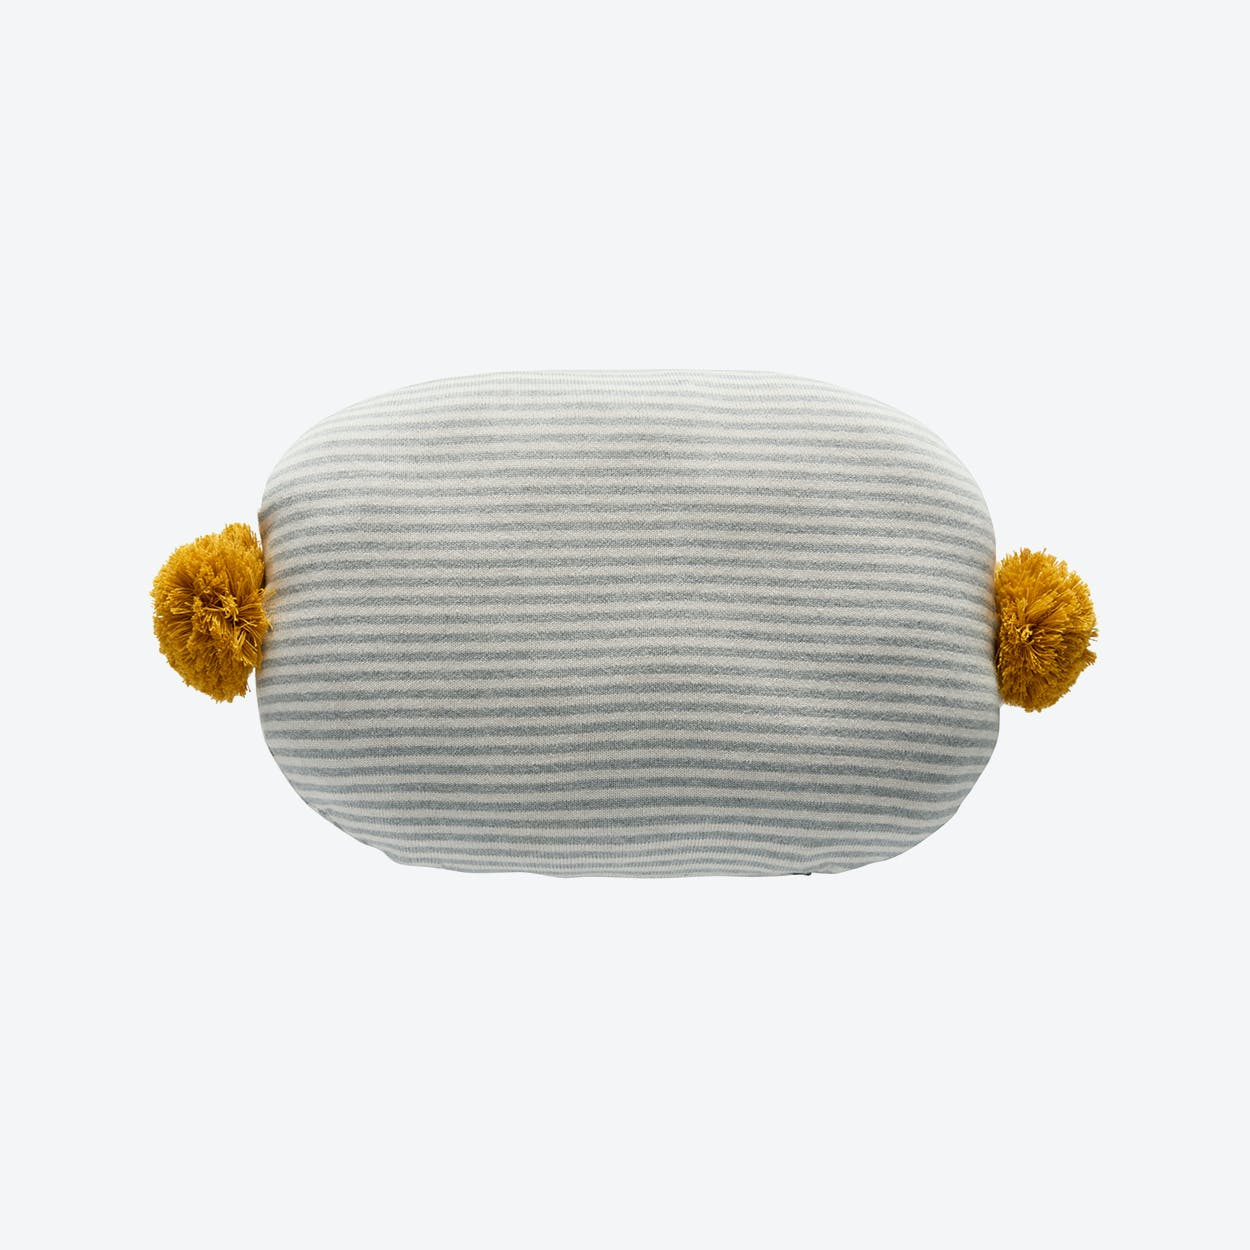 Bonbon Cushion in Light Grey/White/Bamboo